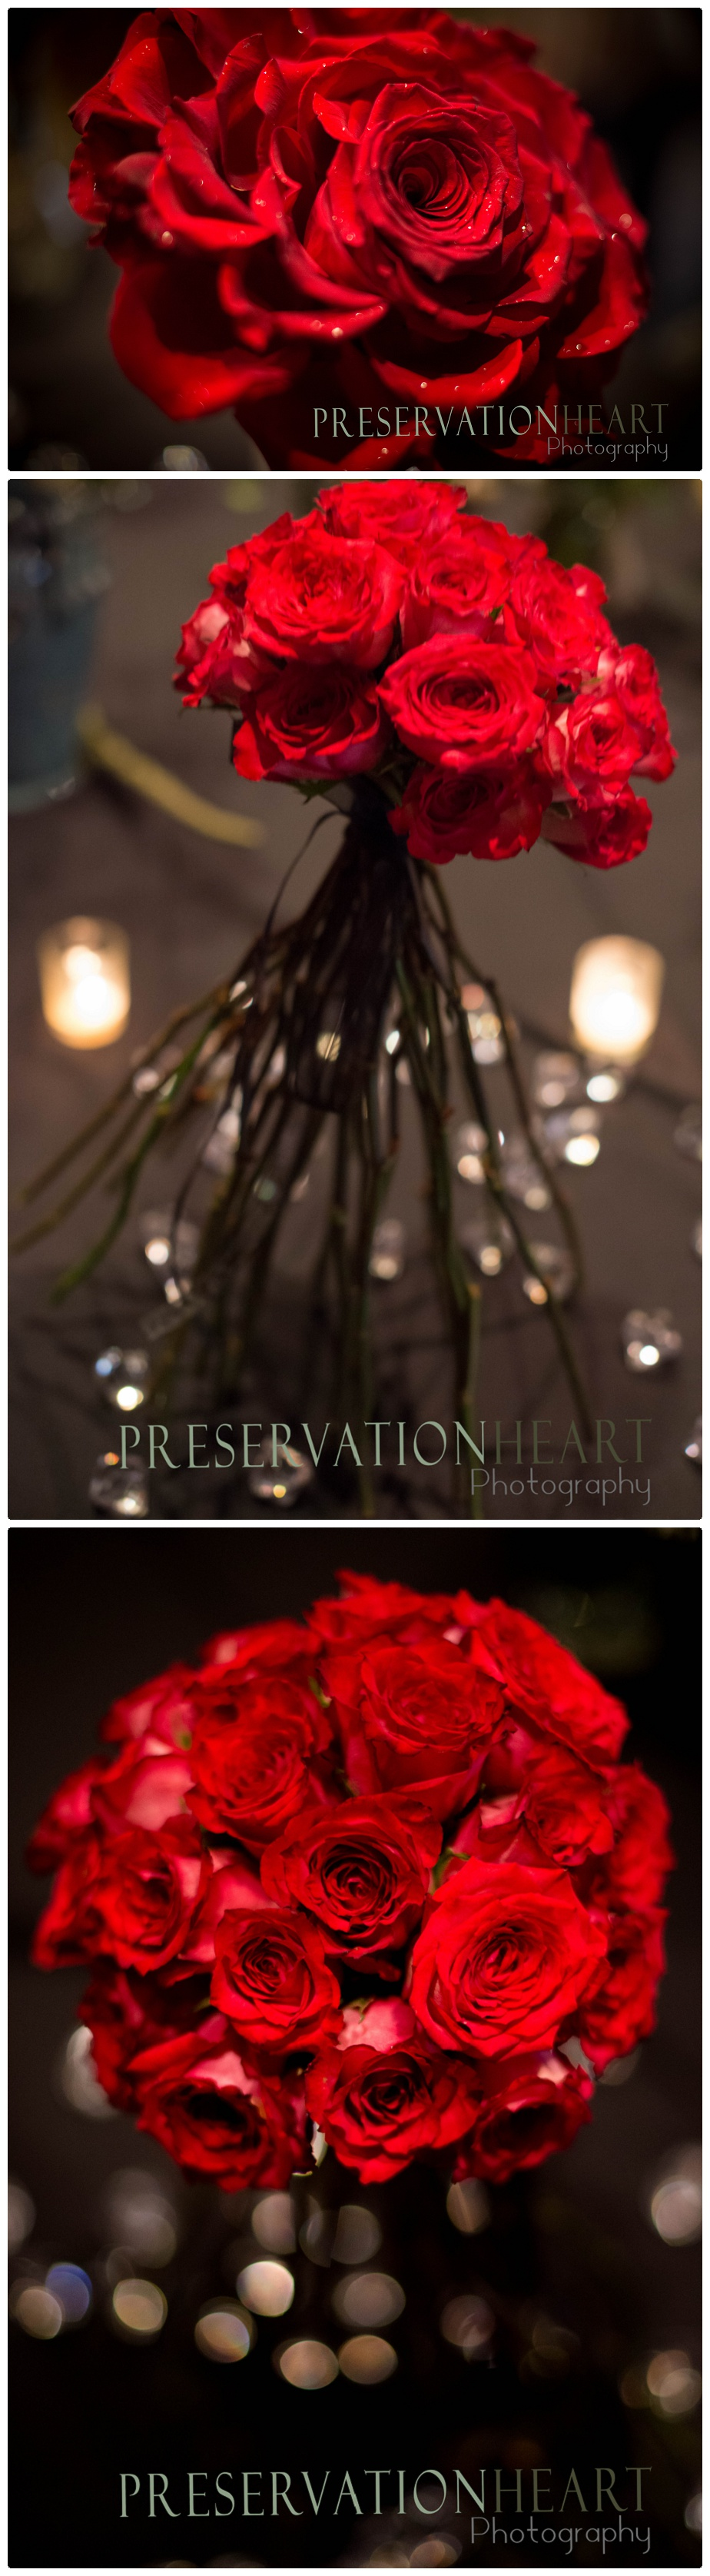 The red roses she has adapted into unusual bouquets and centerpieces - these will turn heads!